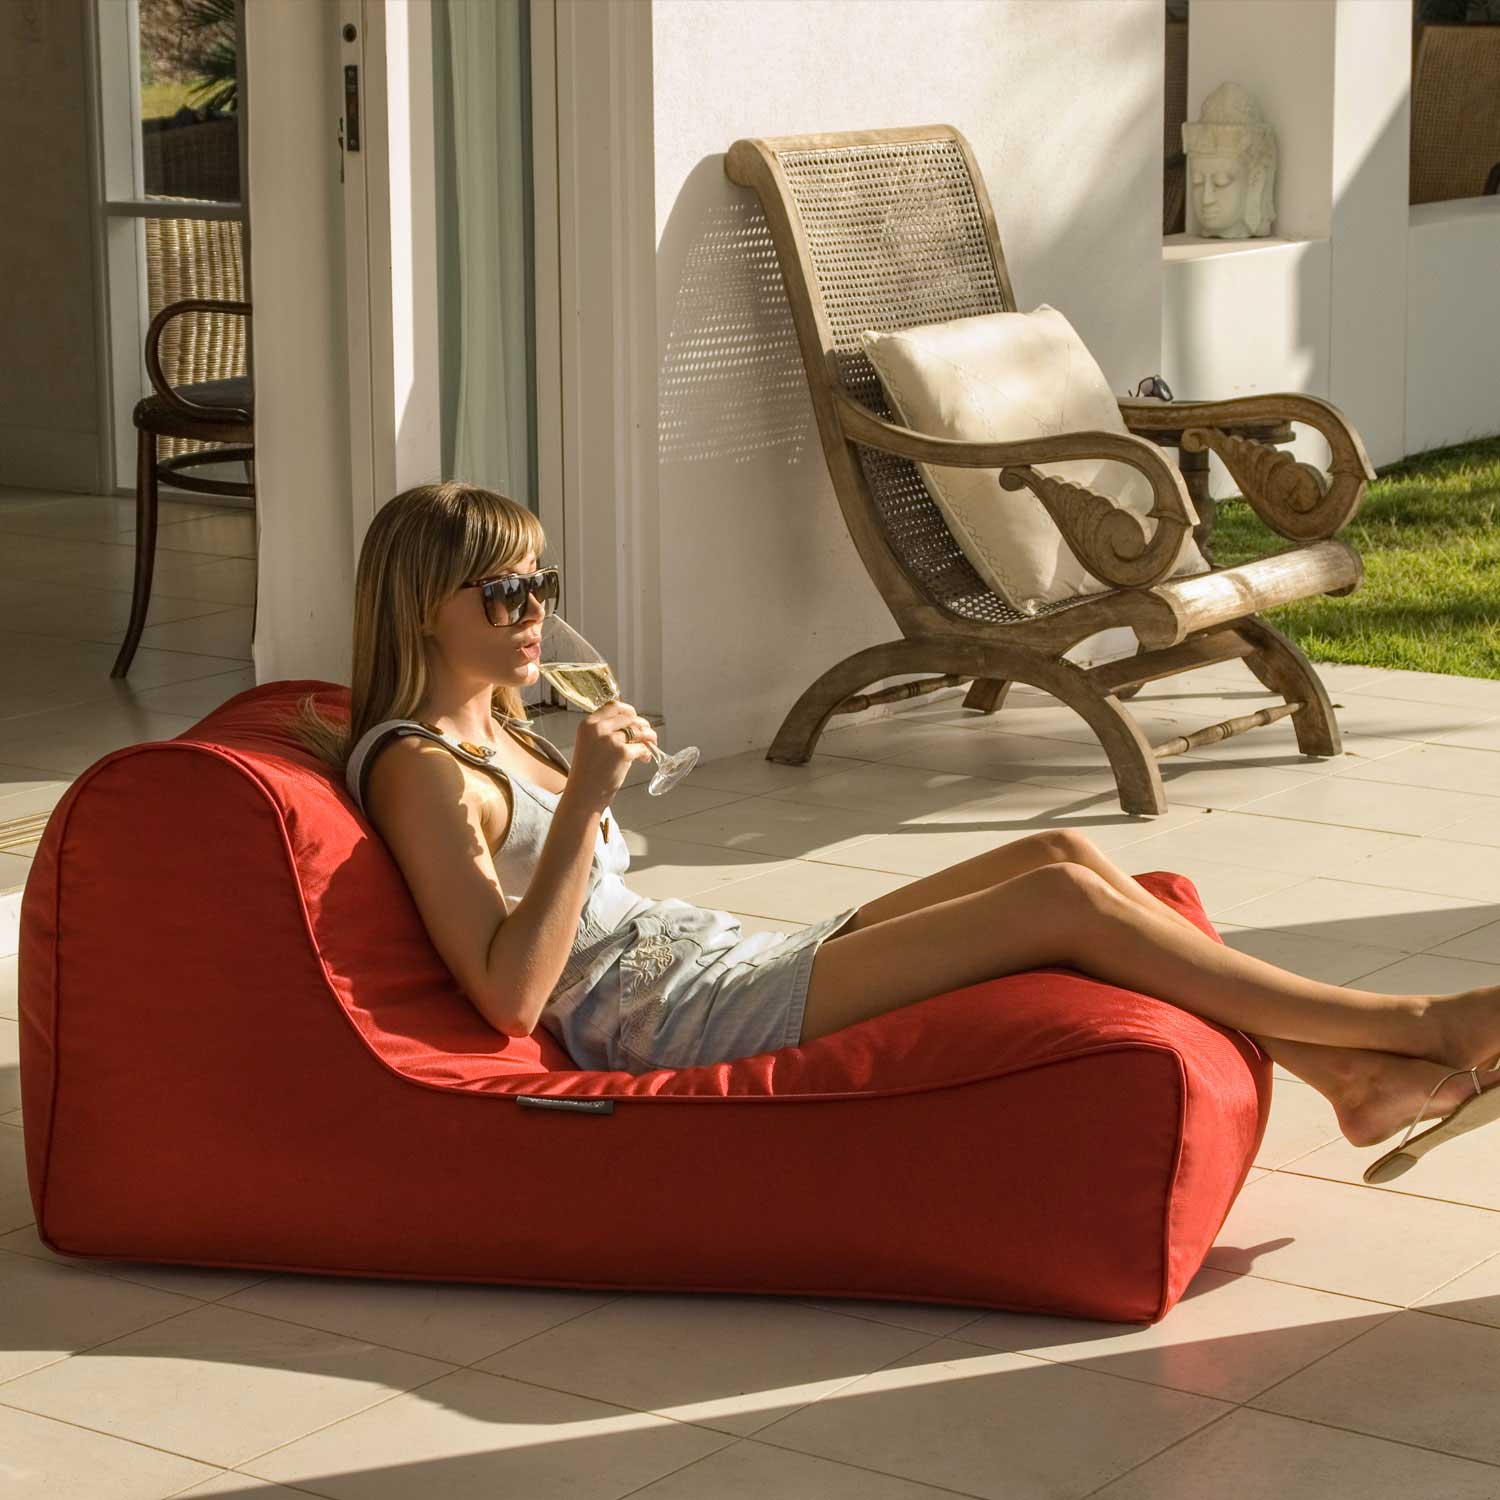 Studio Lounger Toro Red7